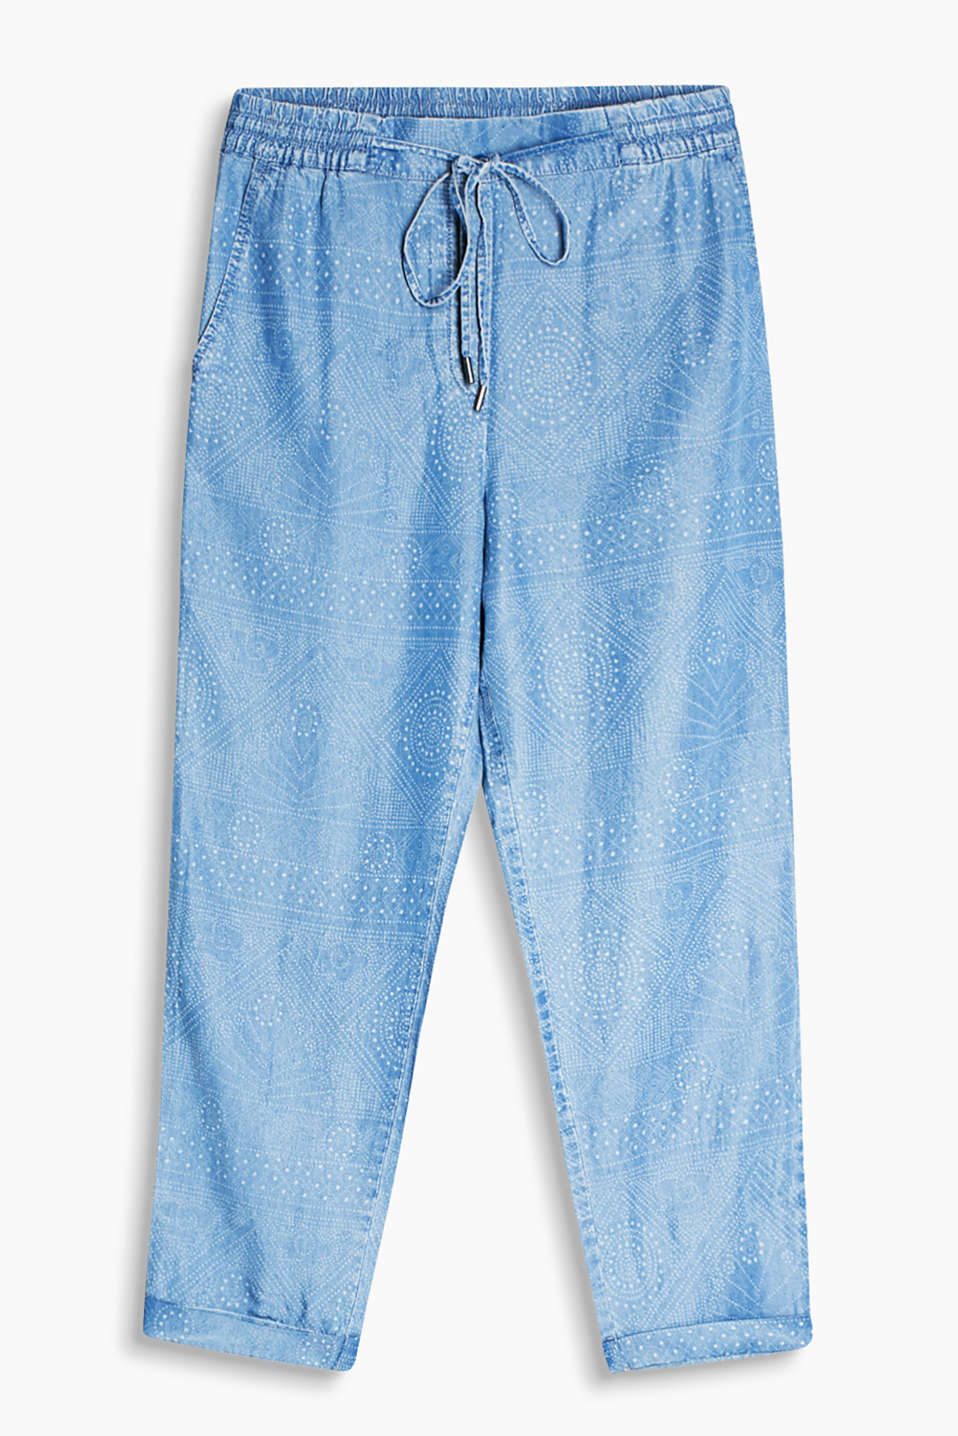 Casual trousers in flowing fabric with an ornamental print, elasticated waistband and turn-up hems